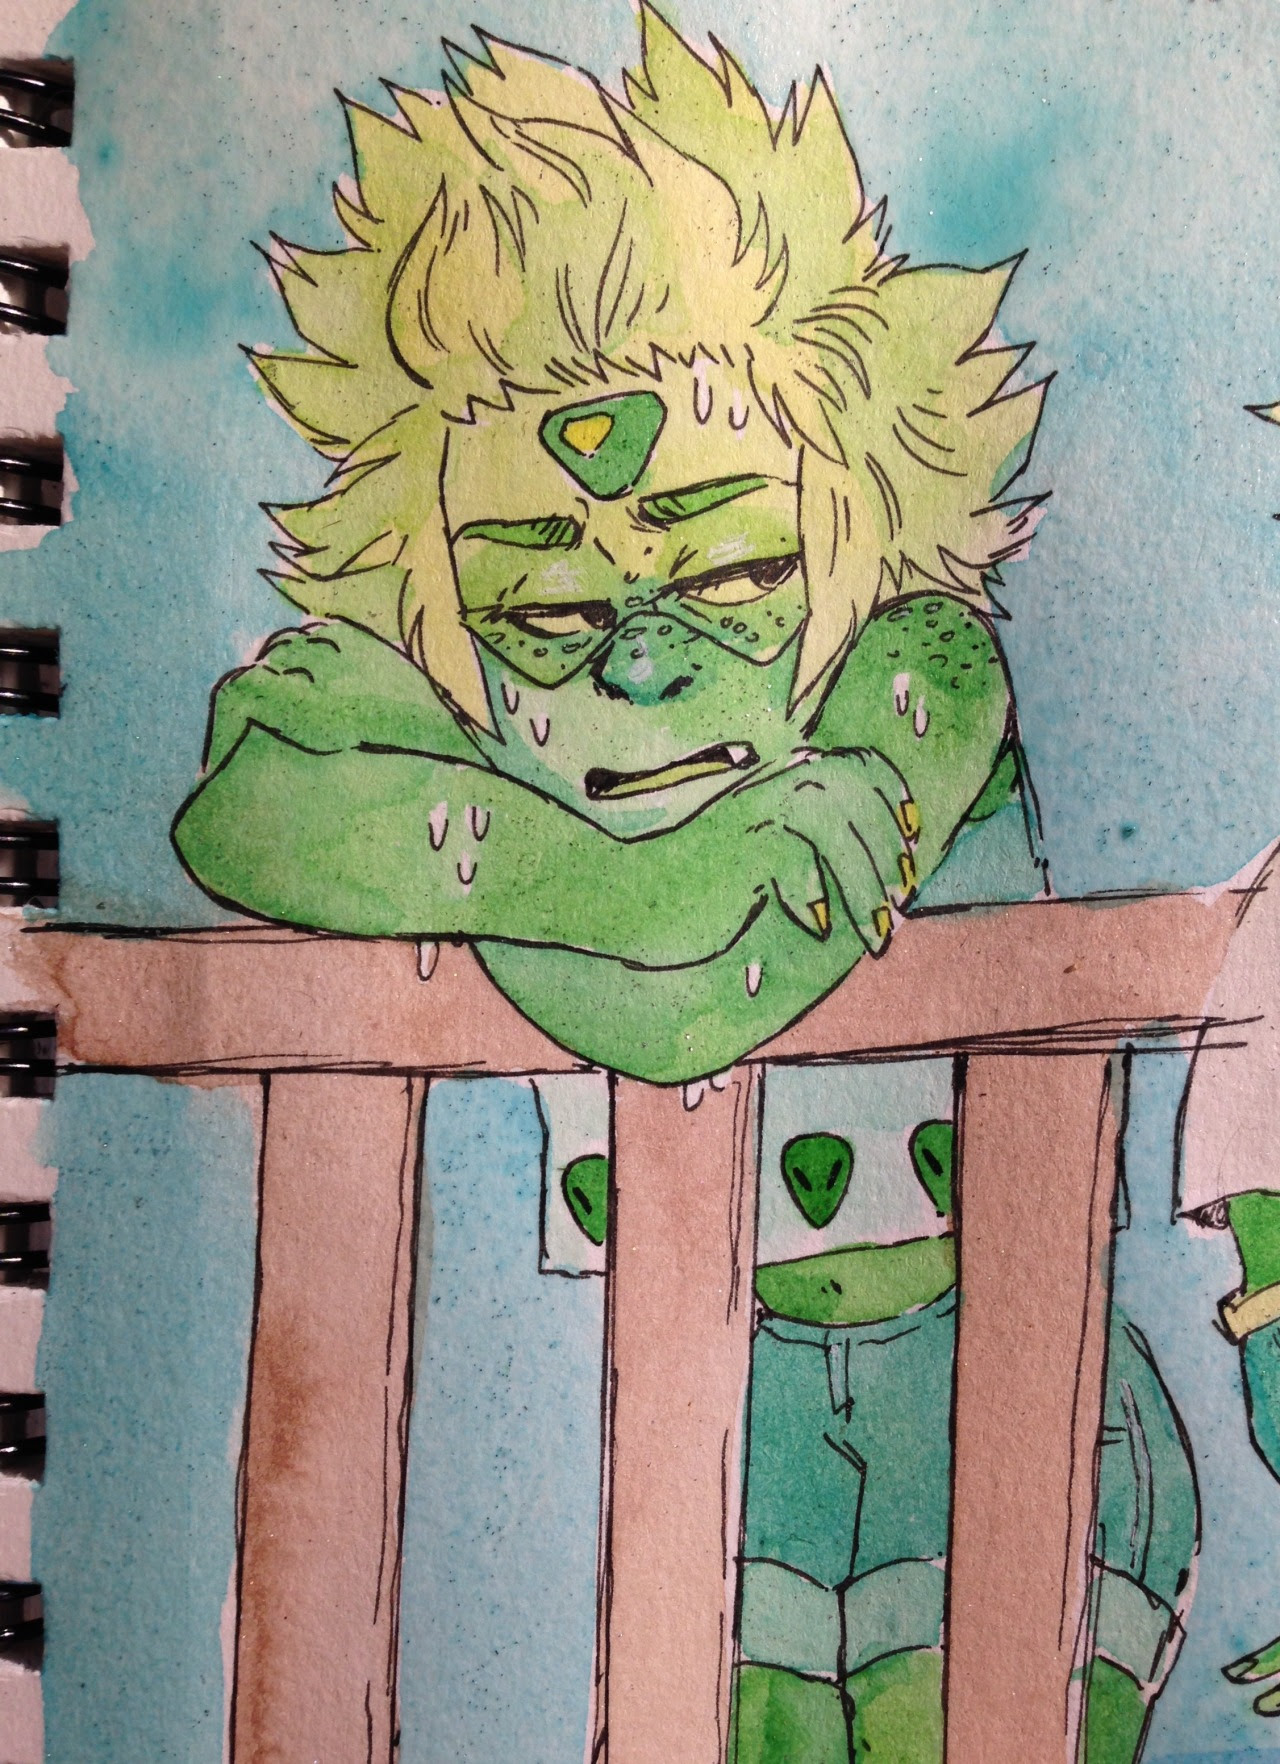 more of peridot suffering through the summer. she complains the whole time.